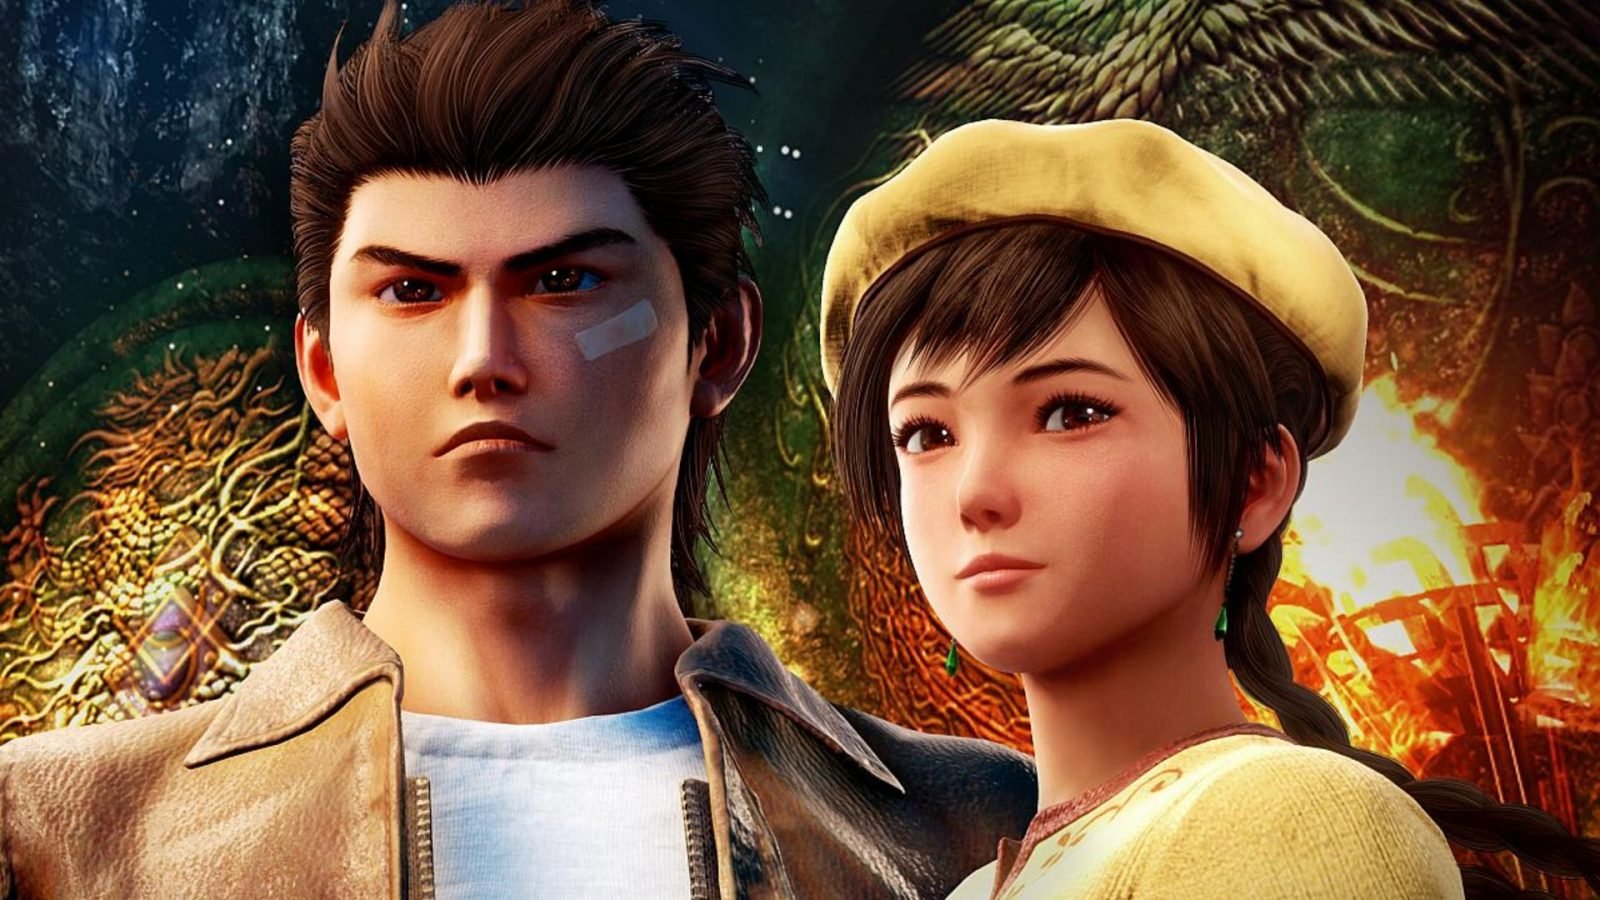 Shenmue III Backers Might Not Get A Steam Key, According To Ys Net